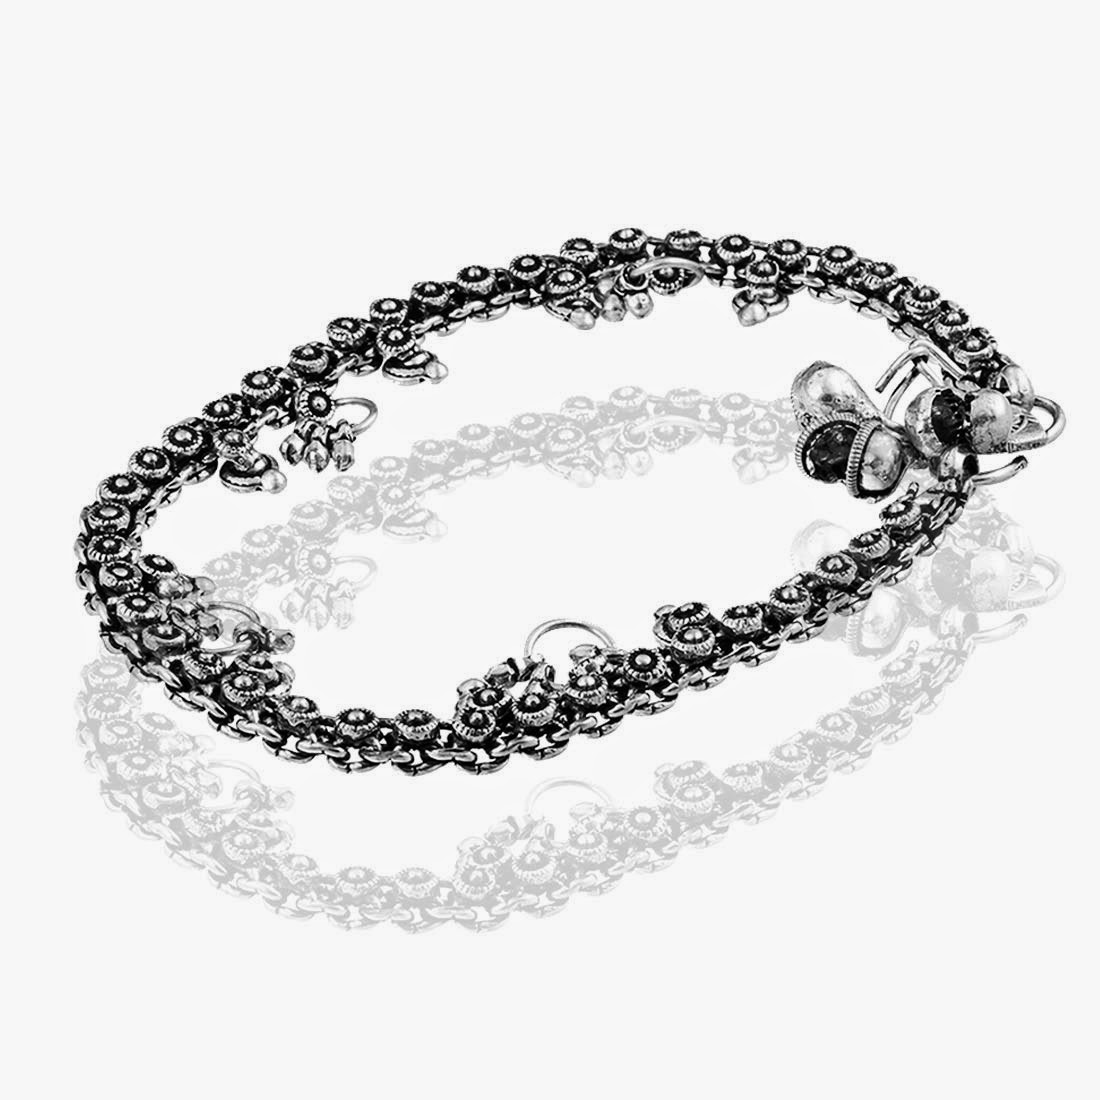 r butterfly products silver pure hand crafted jewellery anklet the buy women anklets online ko for